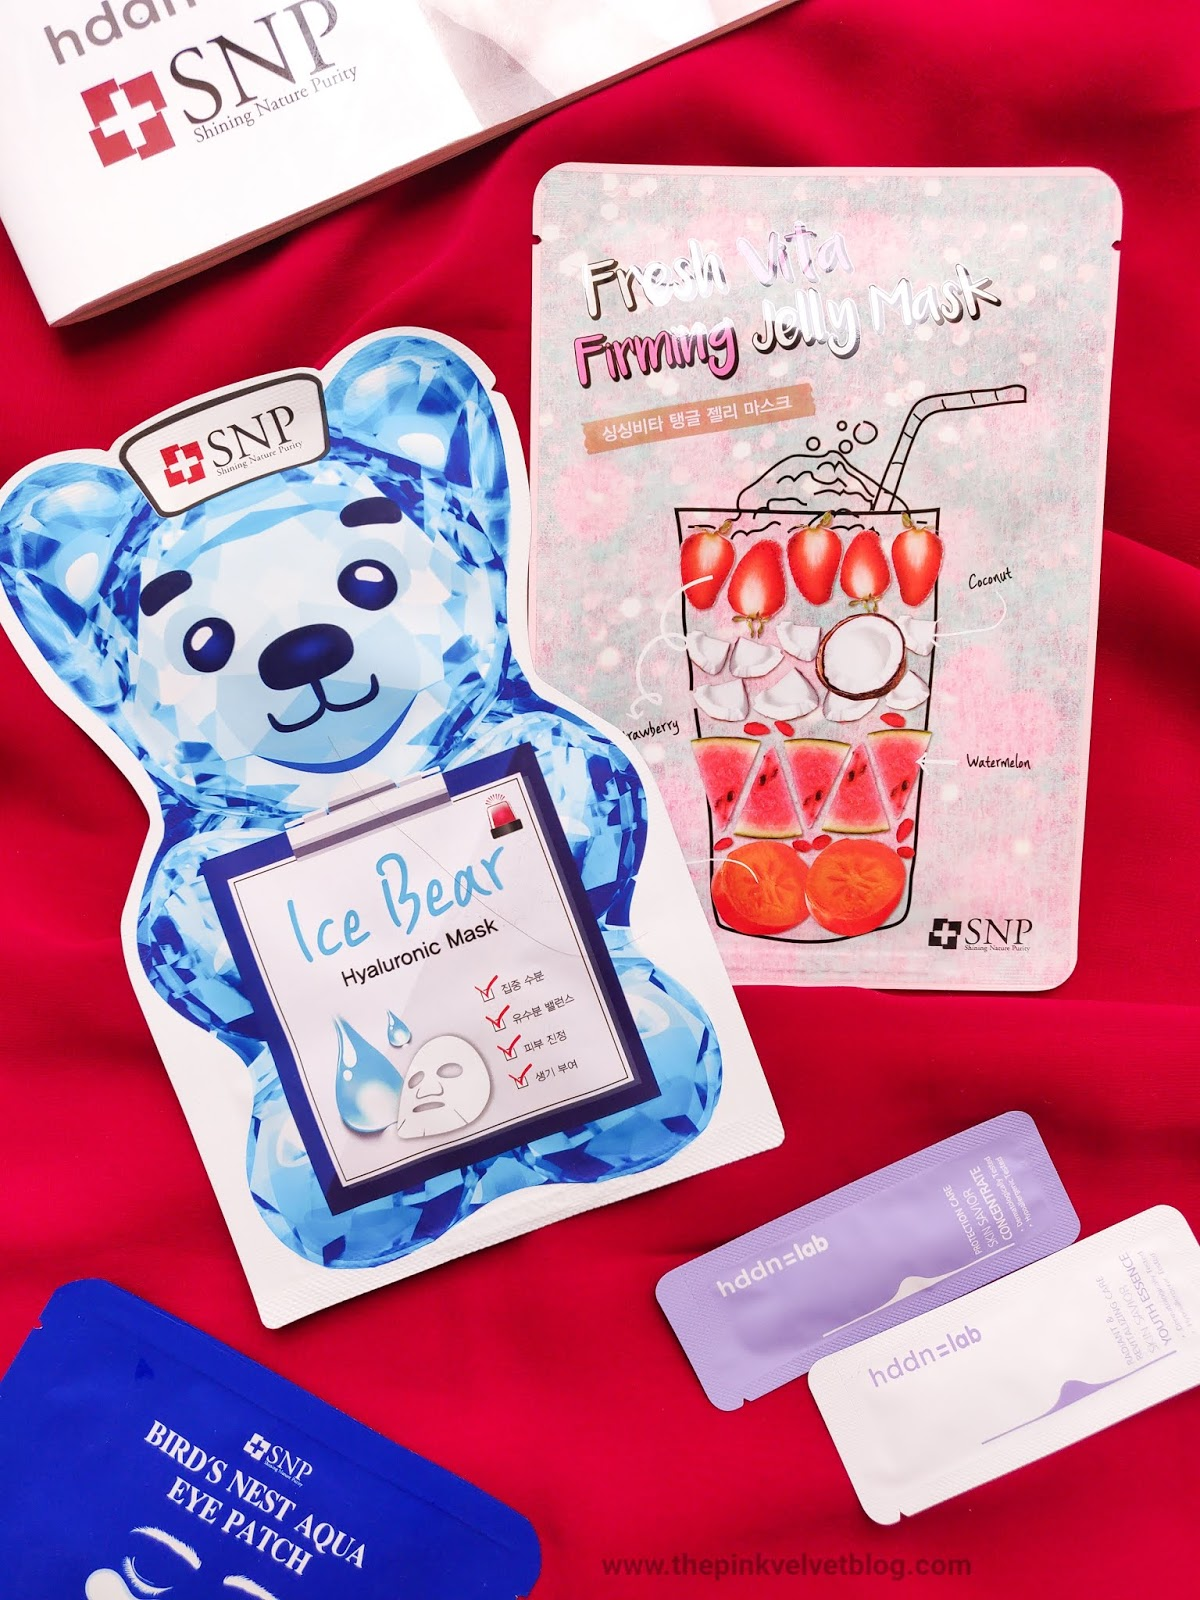 SNP Cosmetics (Korean Skincare Brand) Jelly Sheet Mask